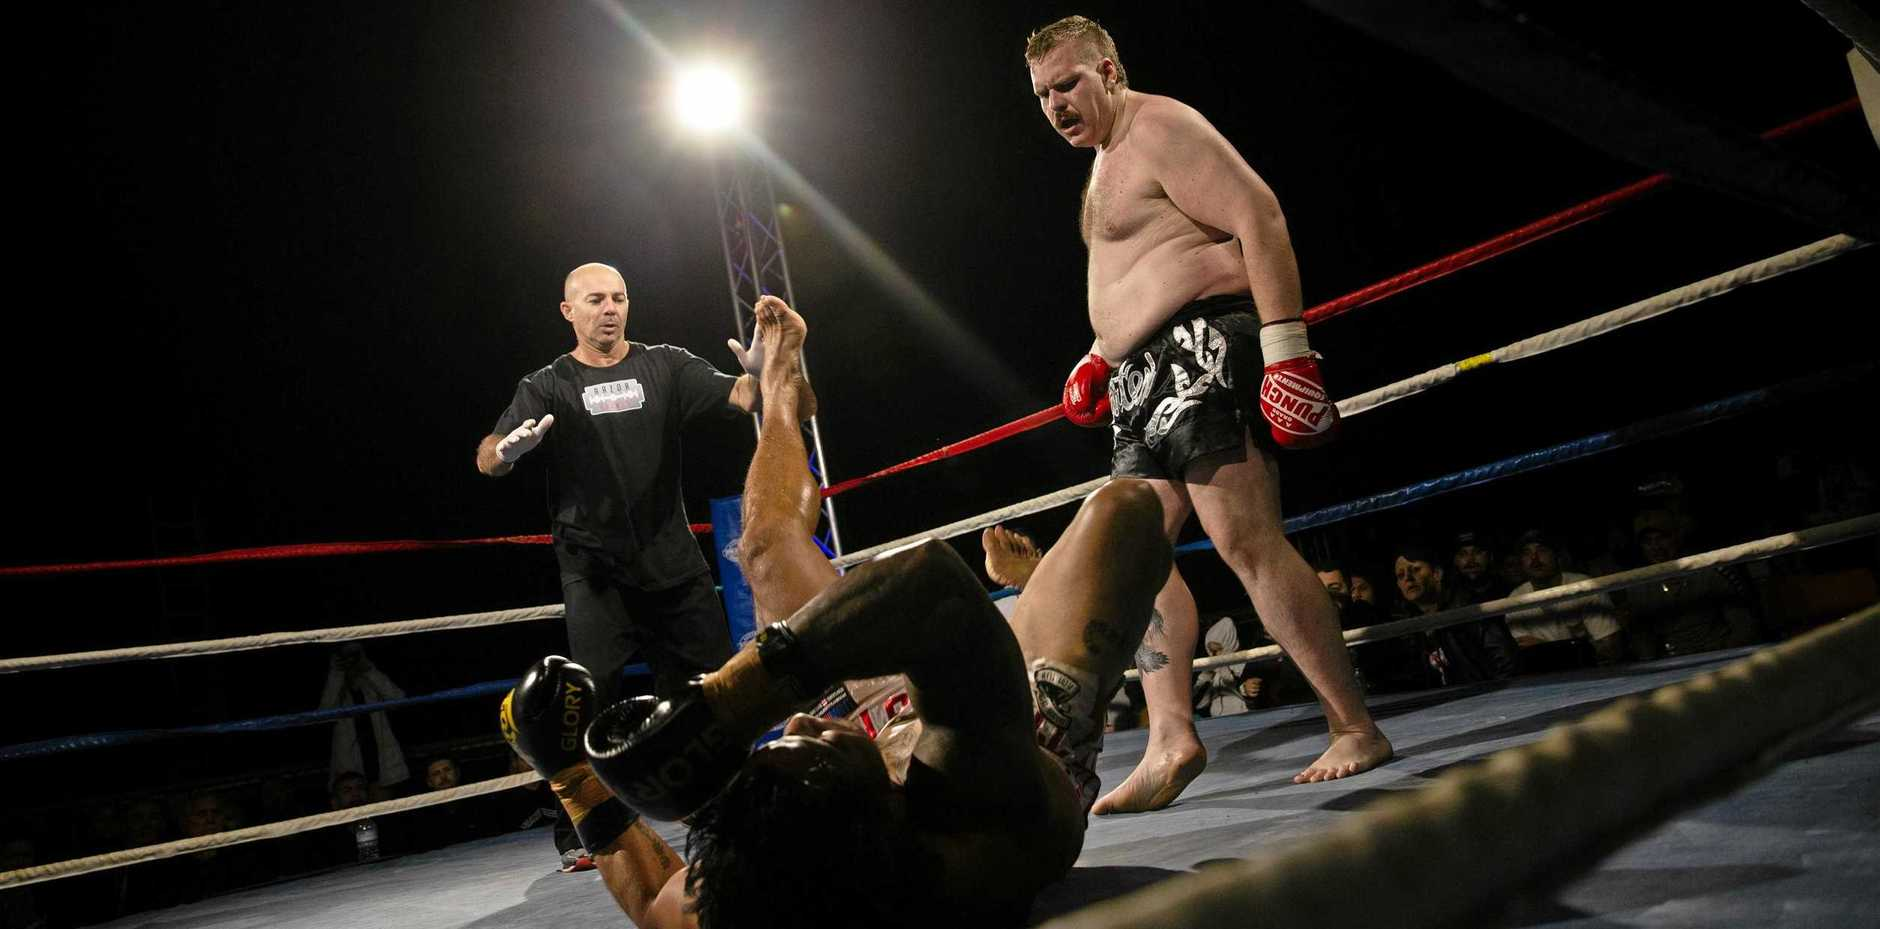 BIG HIT: Rockhampton's Joshua Crank floors Stanley Tuionuku in the super heavyweight division at Rocky Rumble 2019 Part II at Callaghan Park on Saturday night.